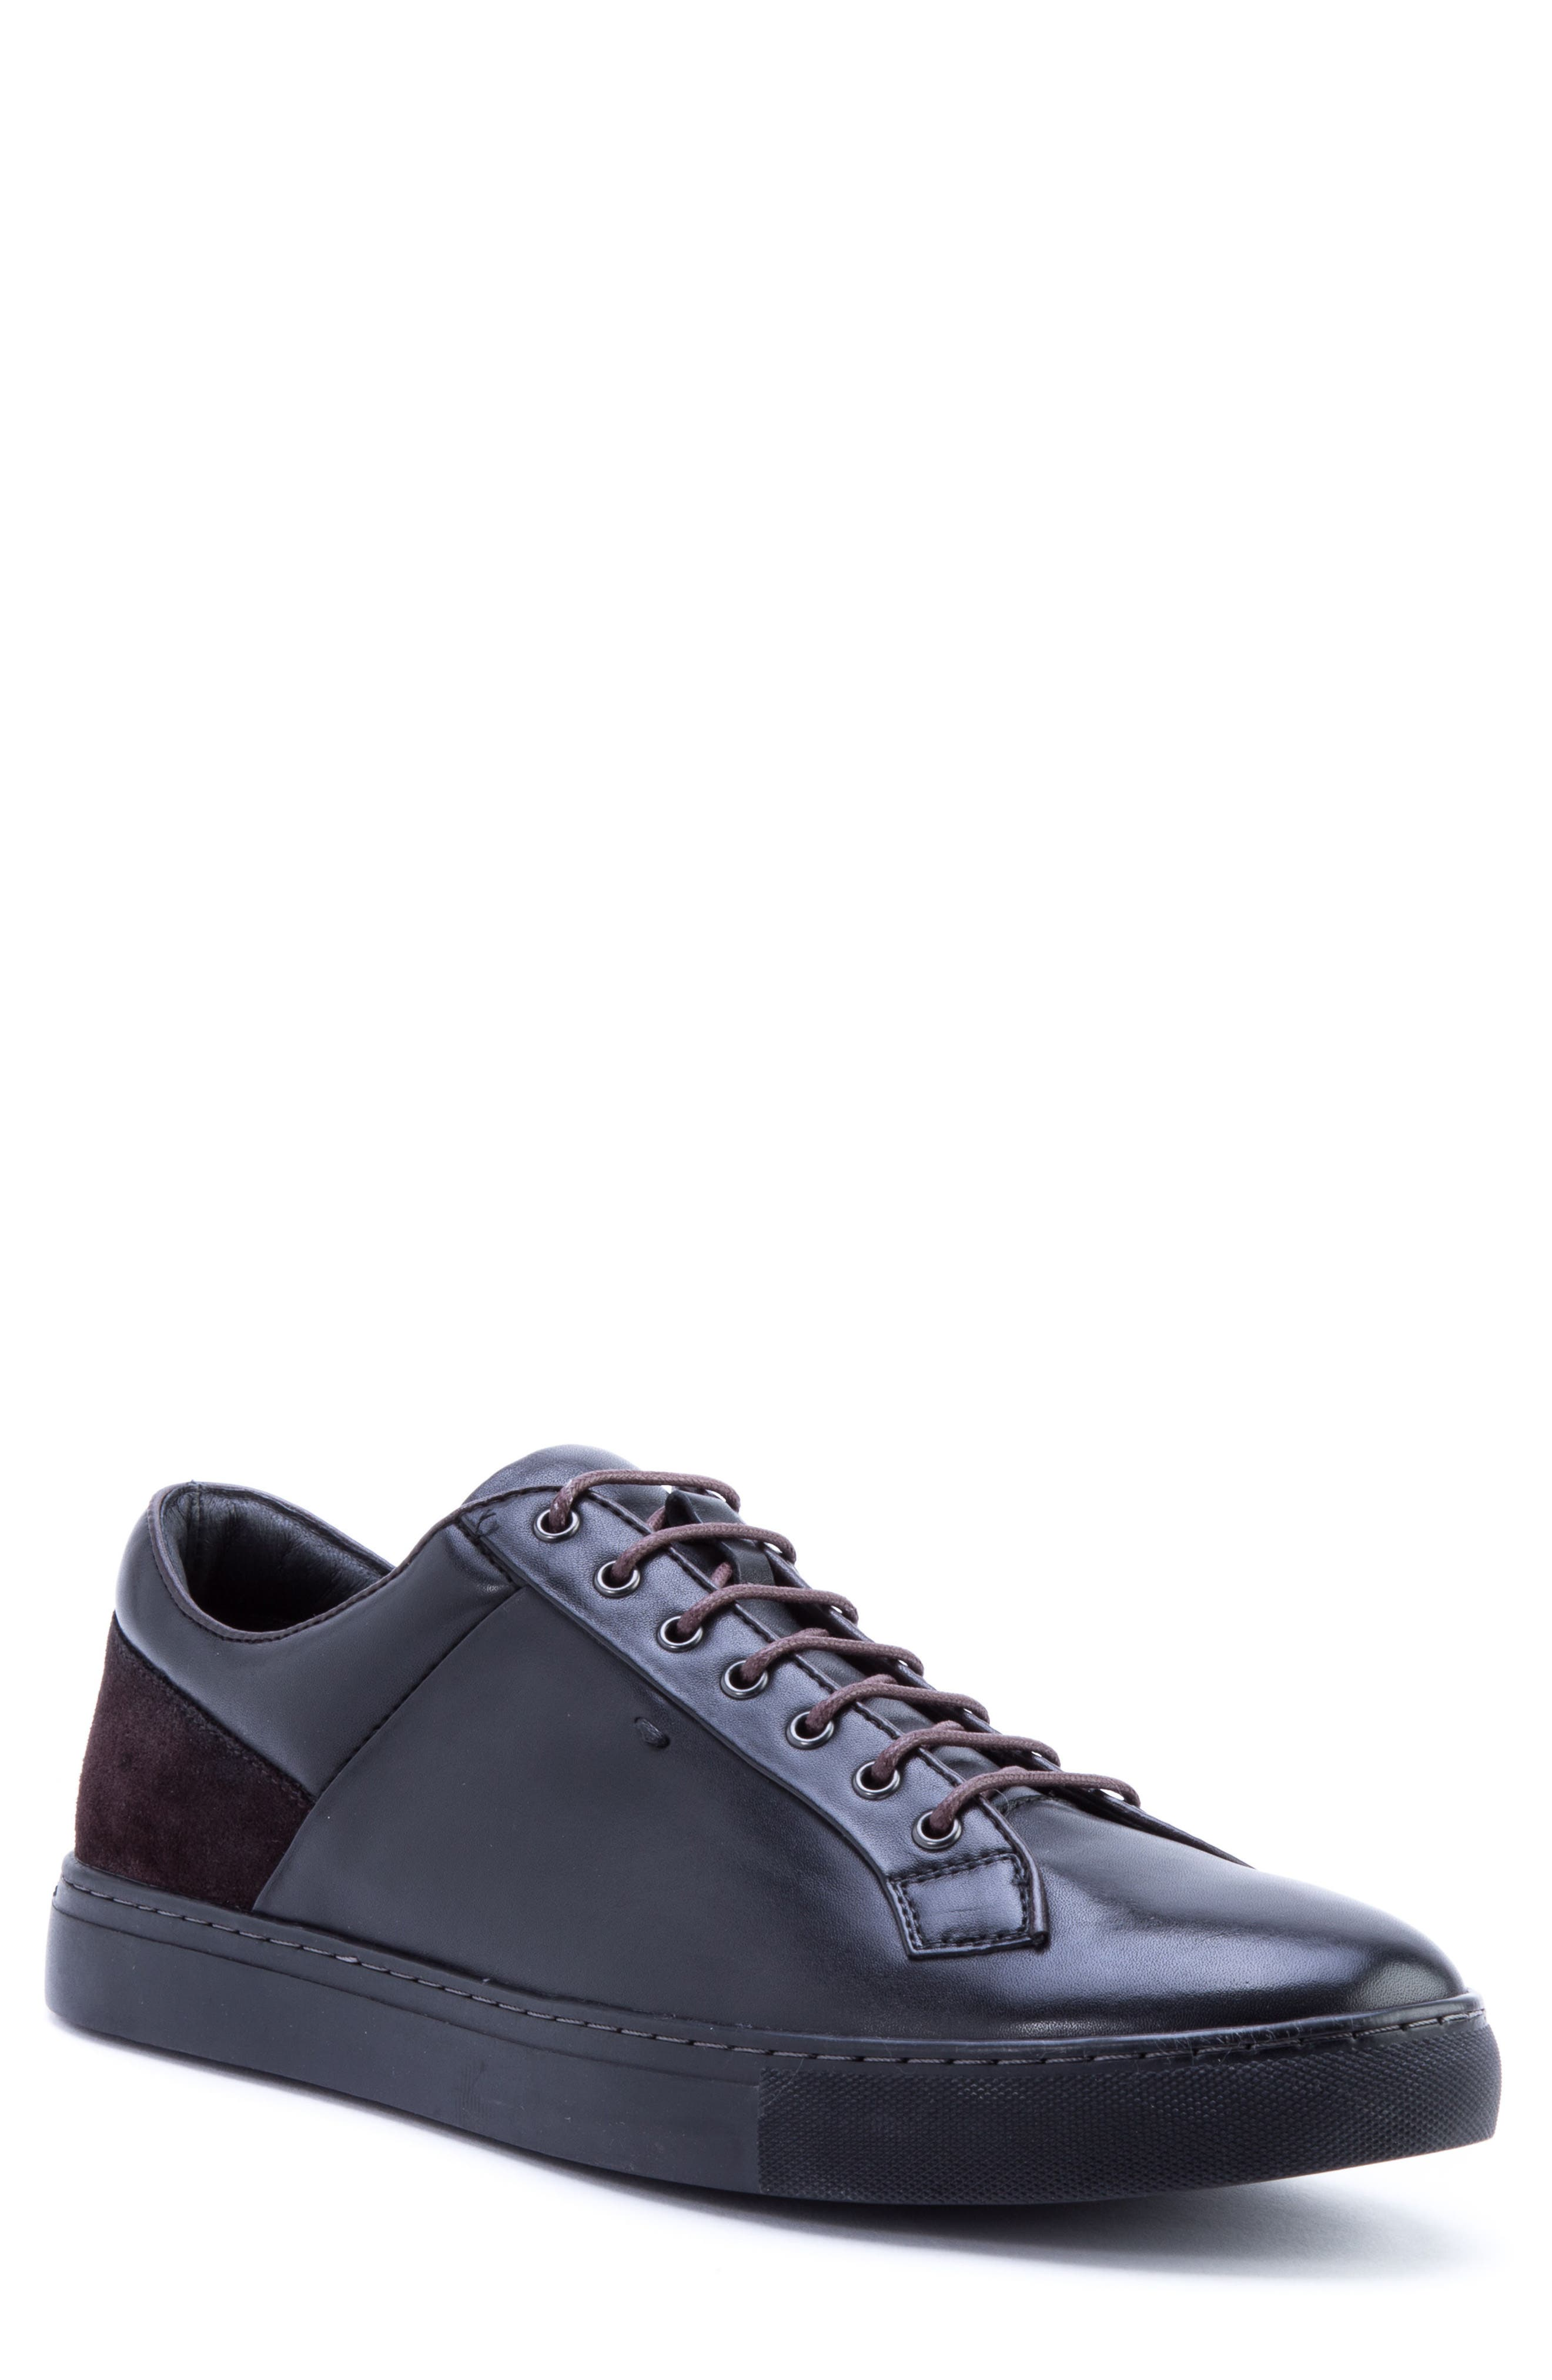 Pitch Low Top Sneaker,                             Main thumbnail 1, color,                             BLACK LEATHER/ SUEDE